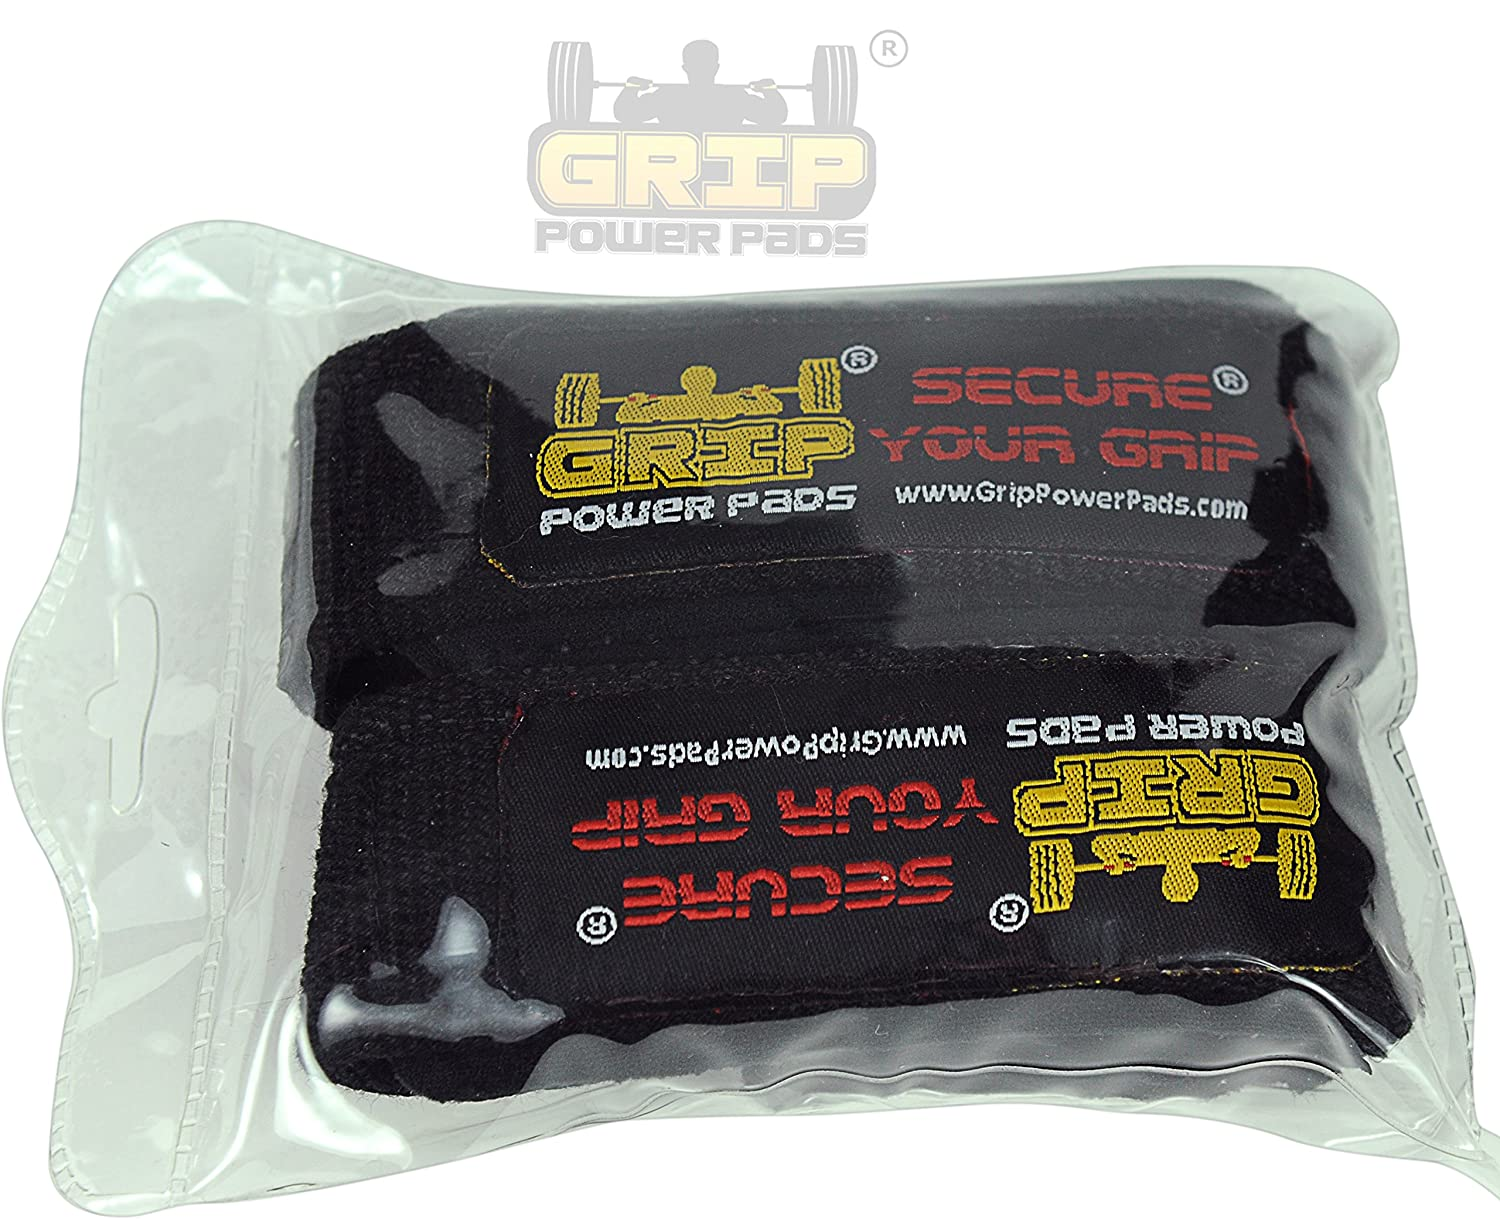 Best Heavy Duty Lifting Straps Neoprene Padded 1 Pair Wrist Wraps /& Rubbery Grip Support Straps with Cotton Coated Rubber on One Side